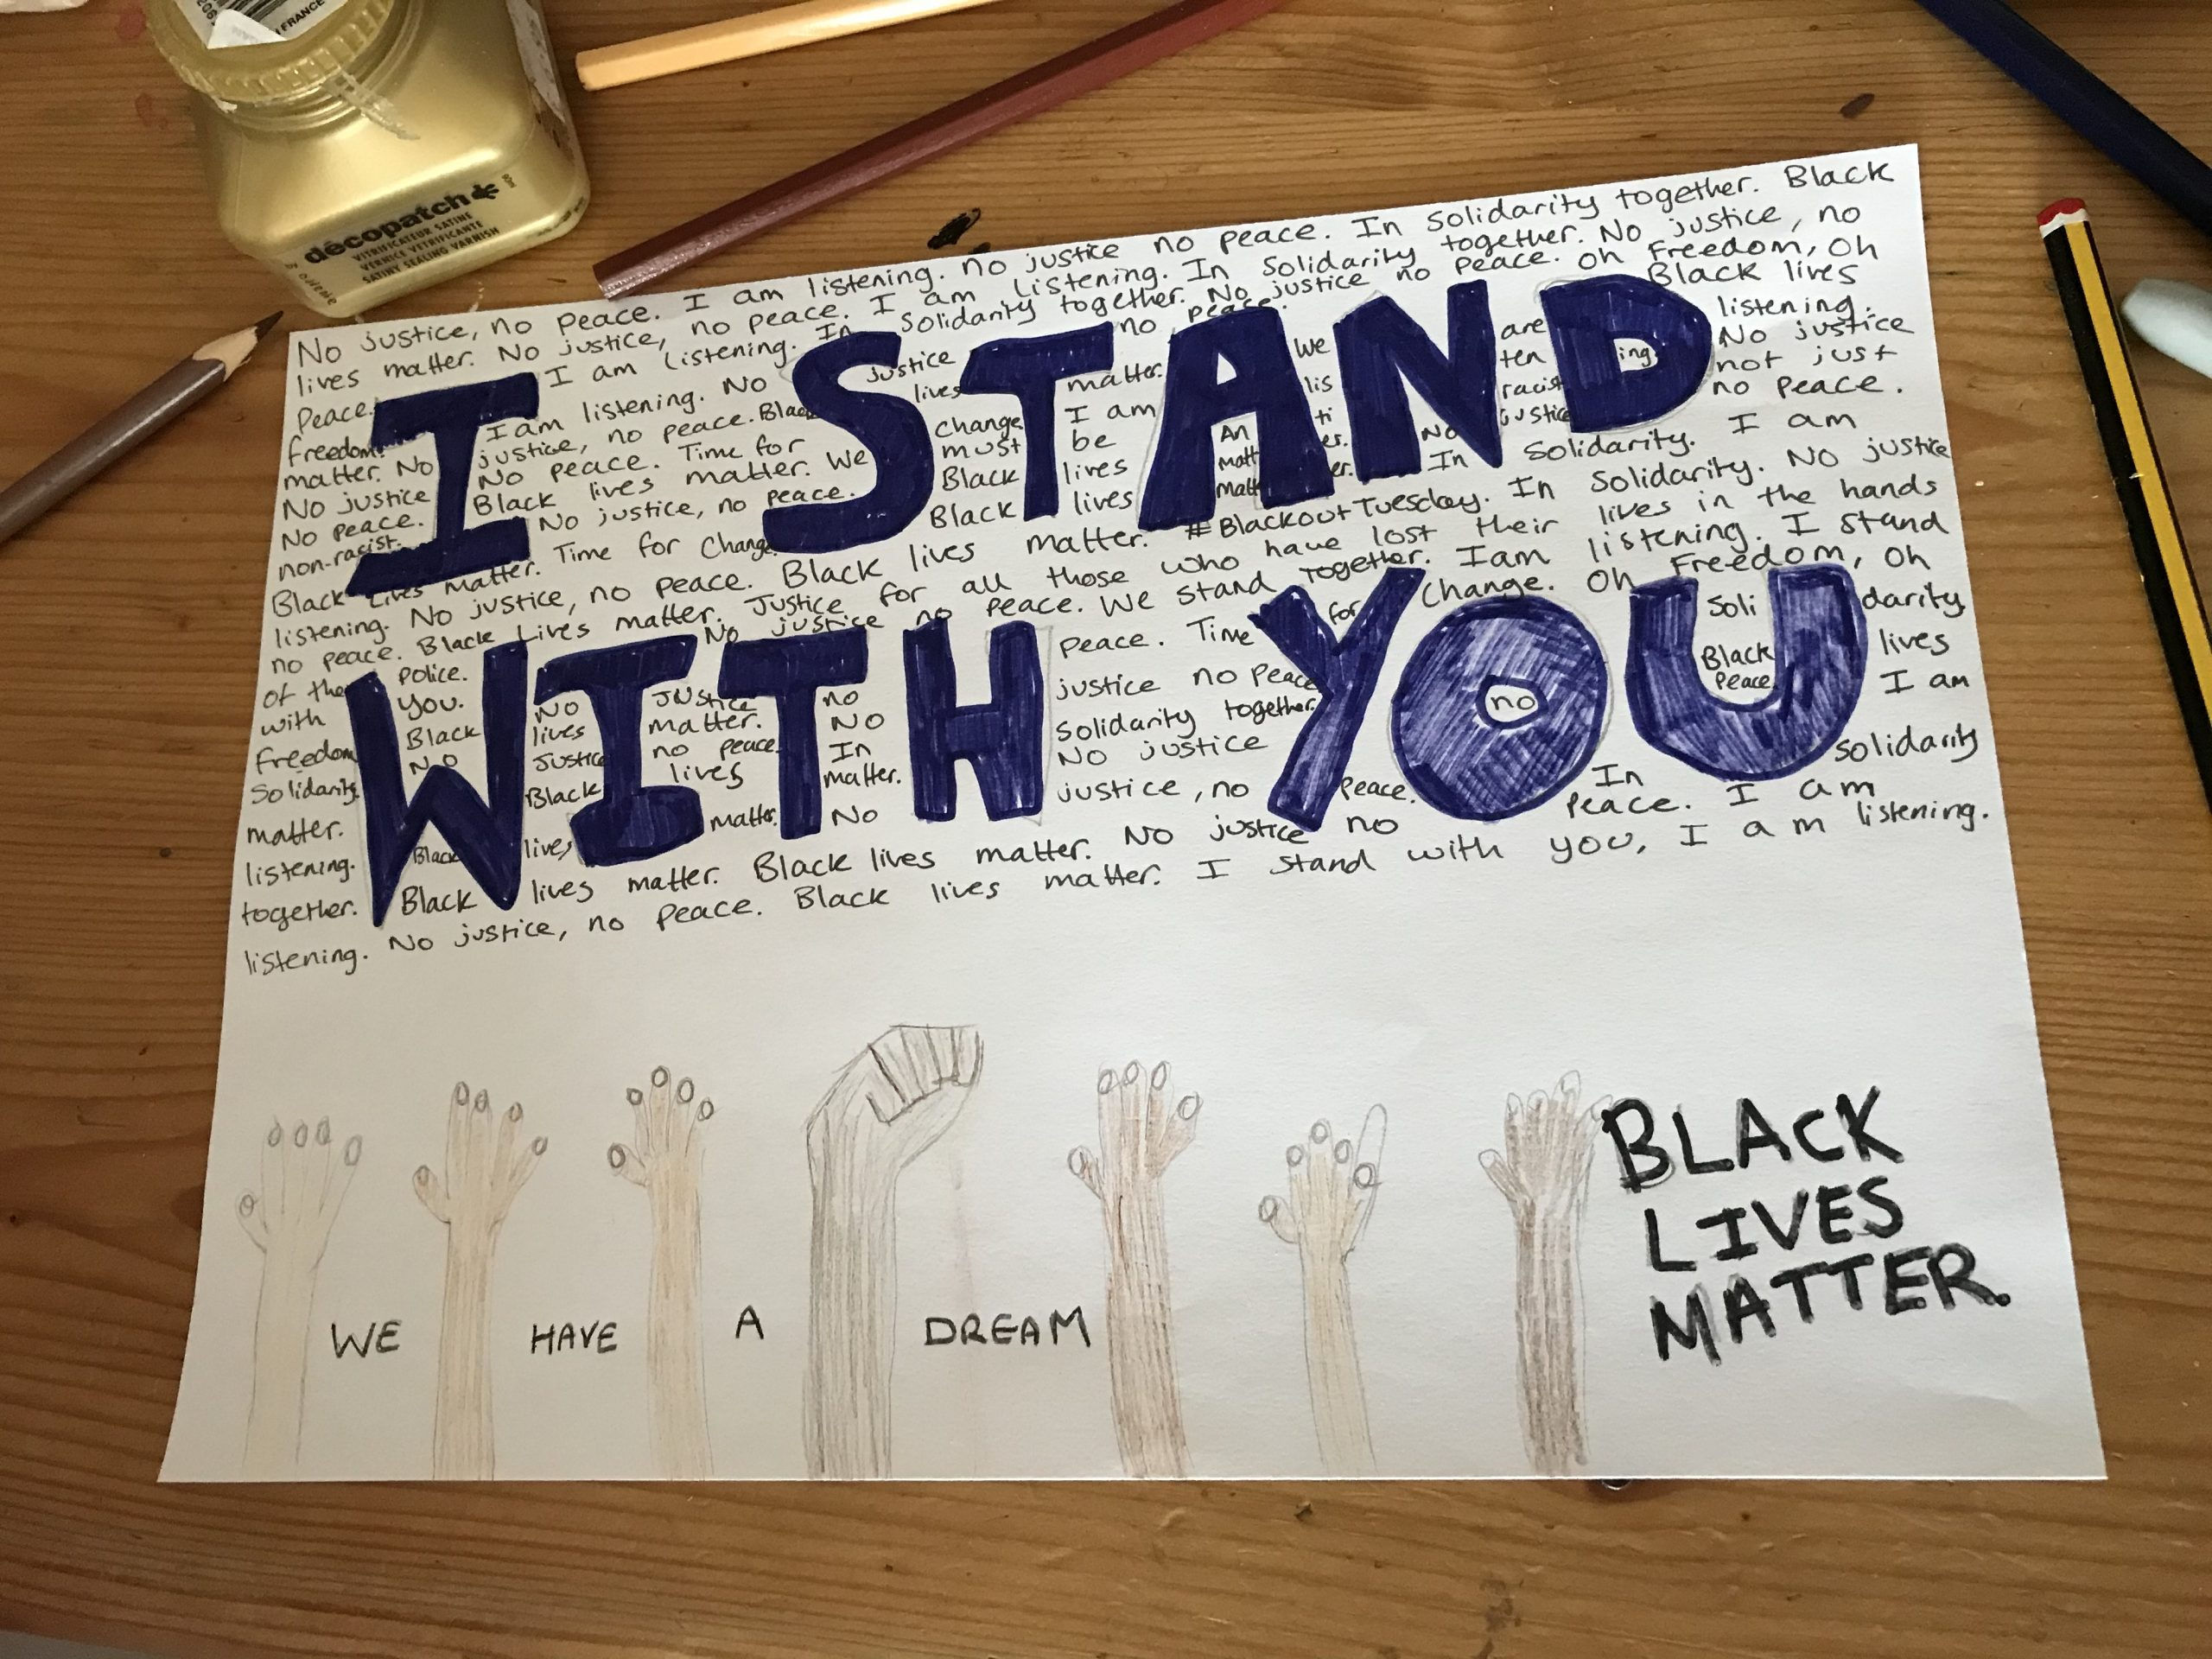 homemade poster with raised fists and the slogan 'I stand with you'